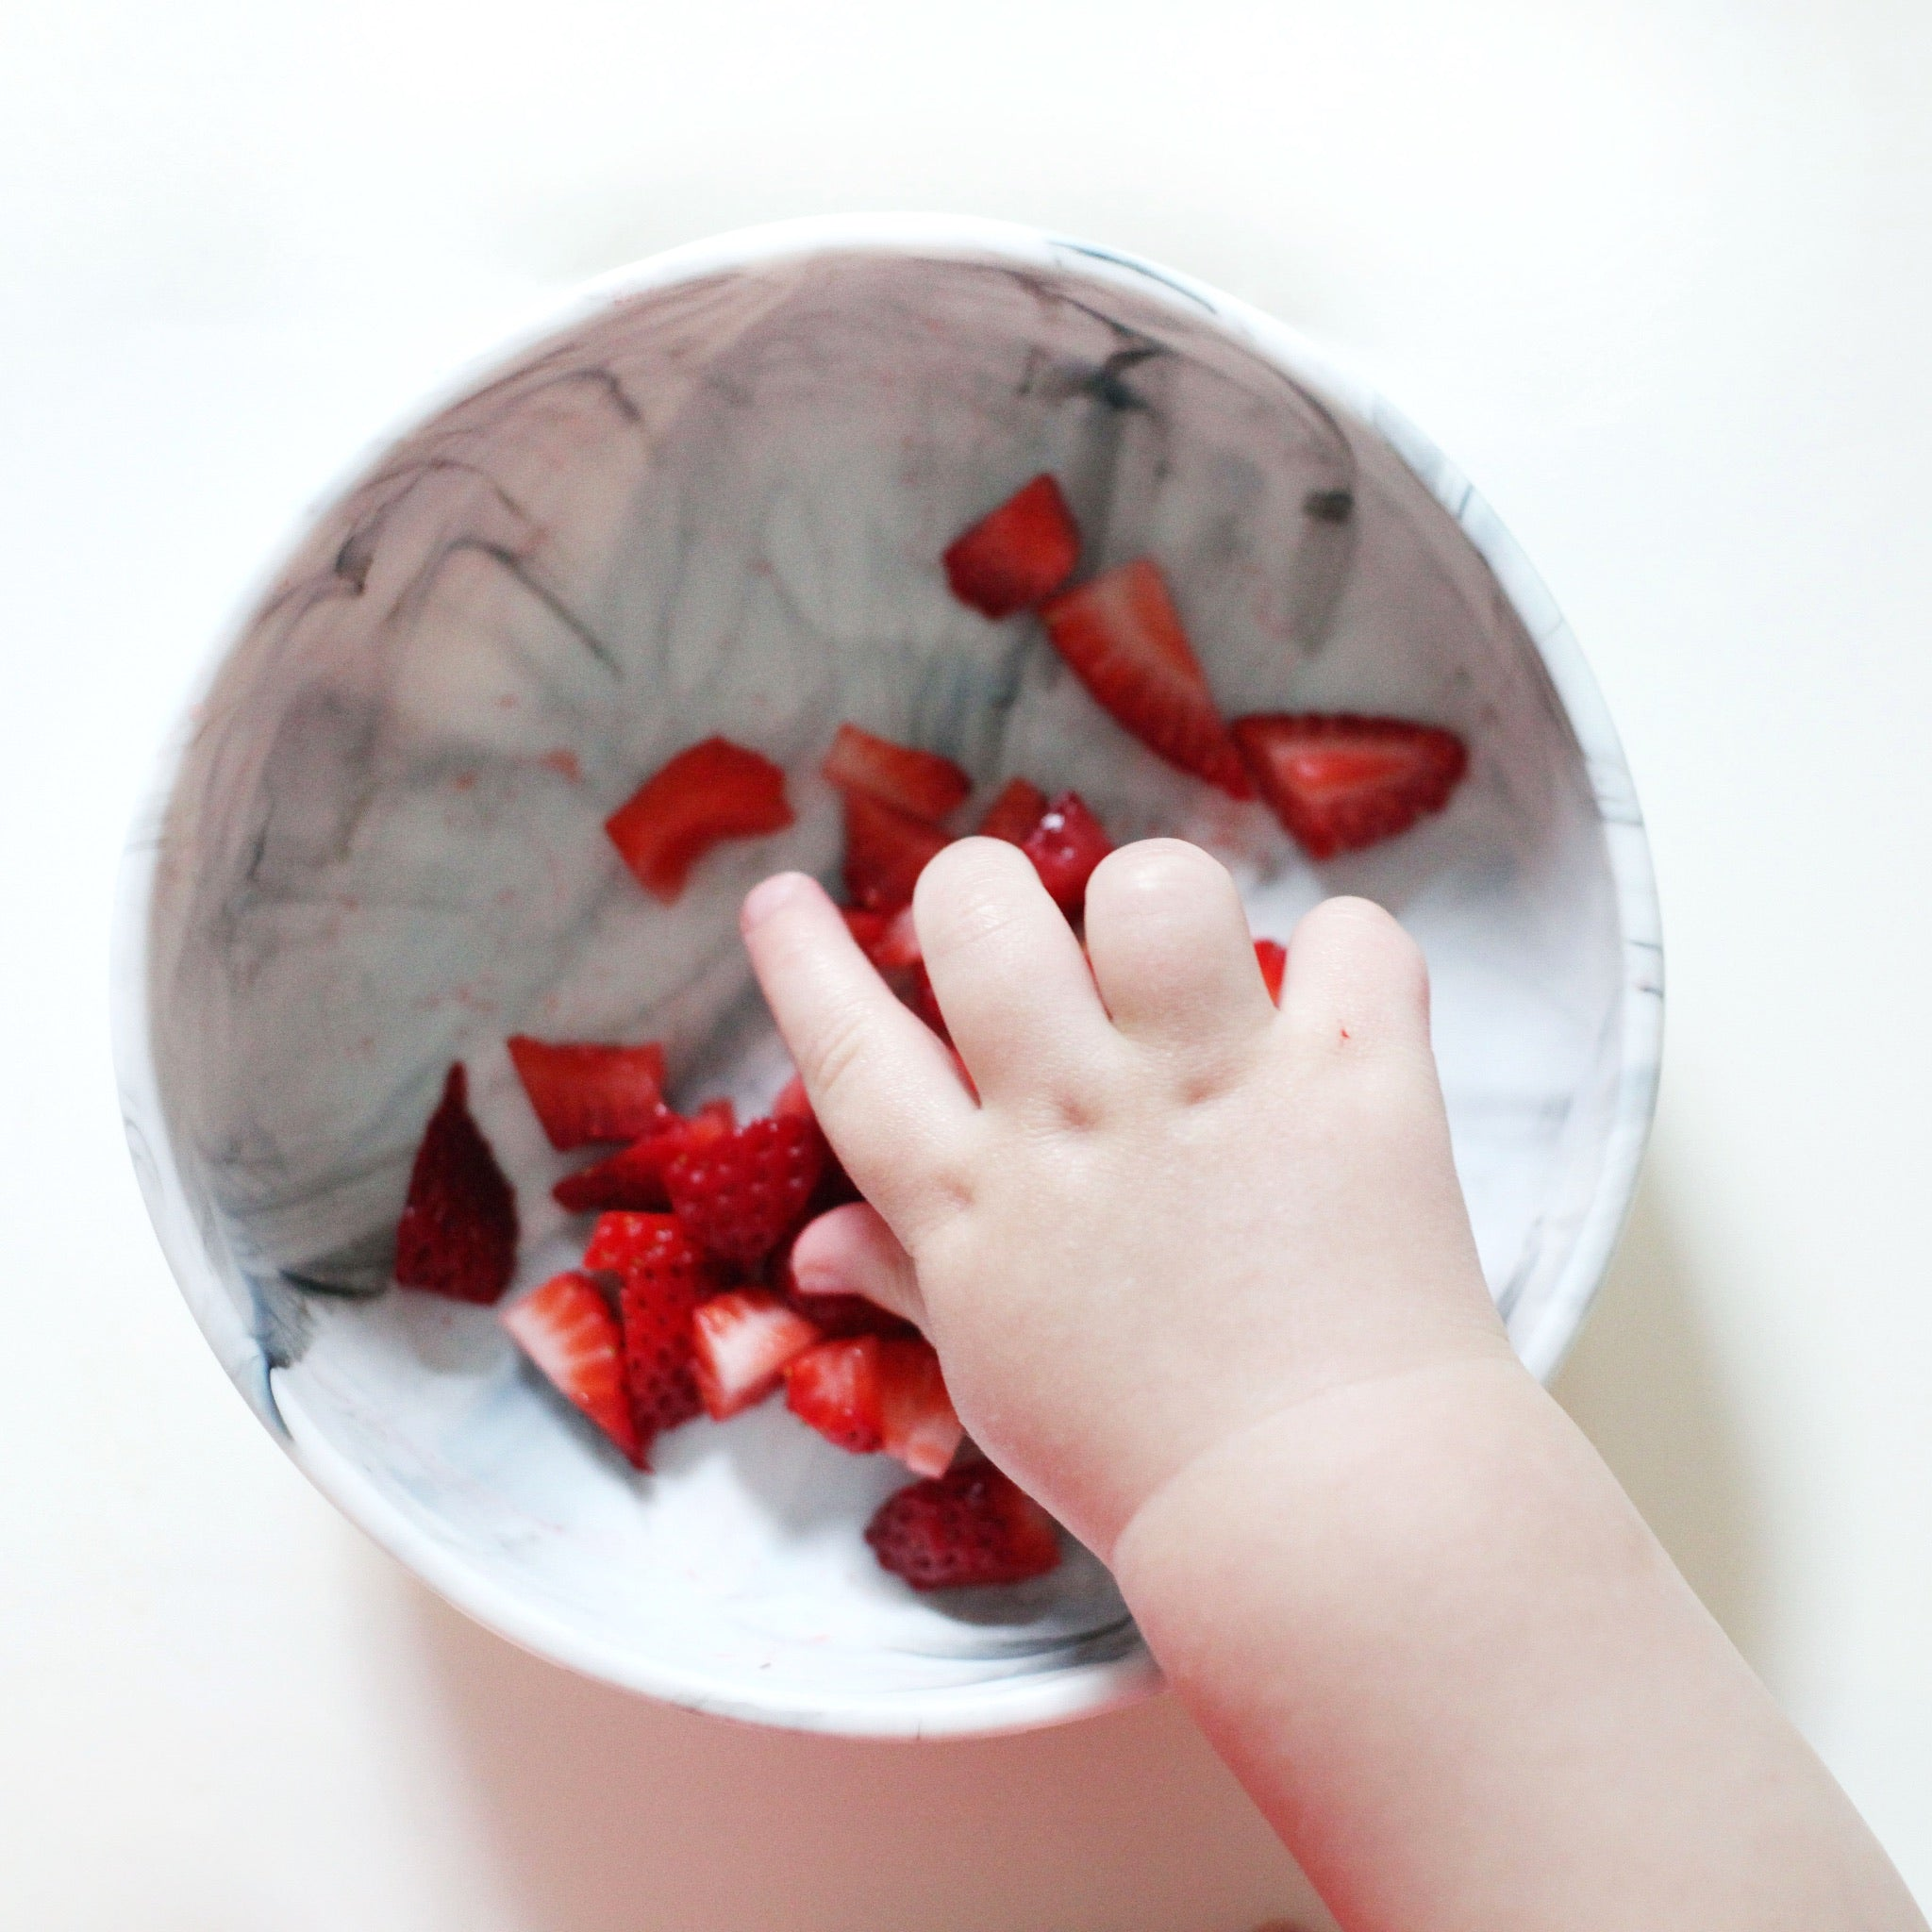 Baby Silicone Bowl Set - Blush & Marble